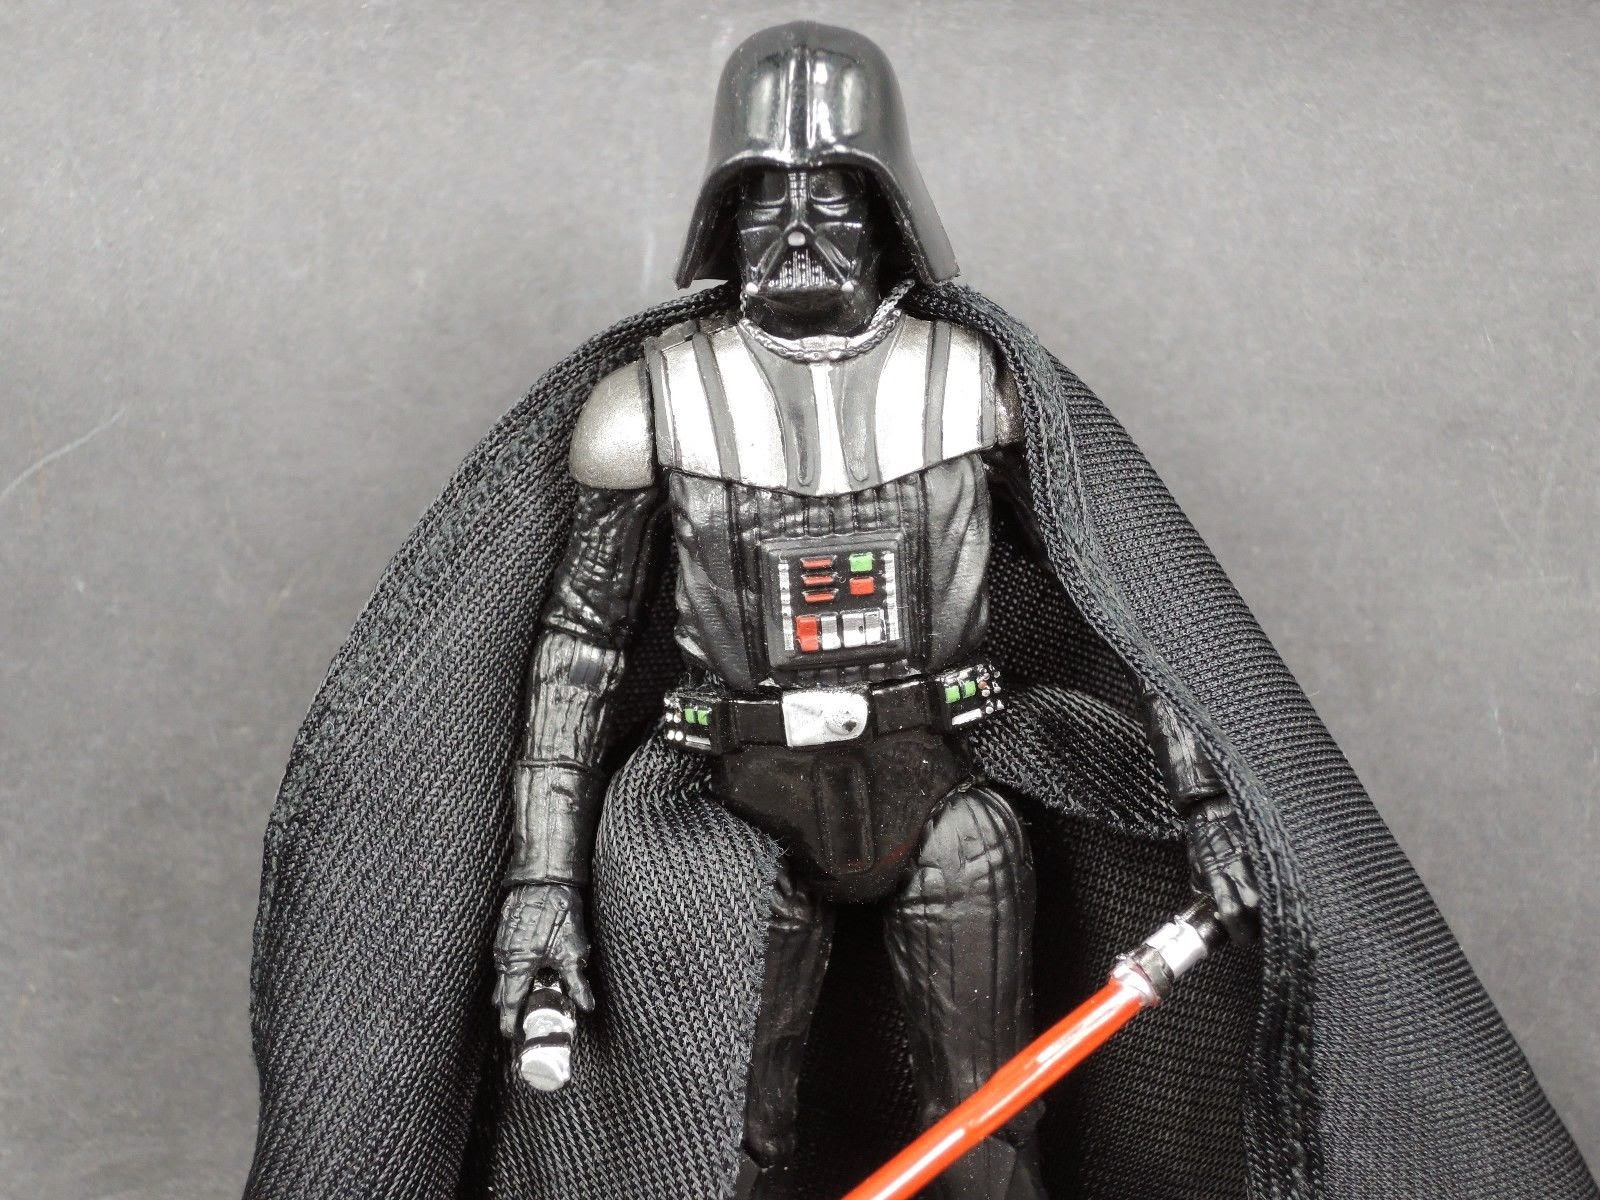 Star Wars Darth Vader Black series 3.75inch wave 6 loose figure